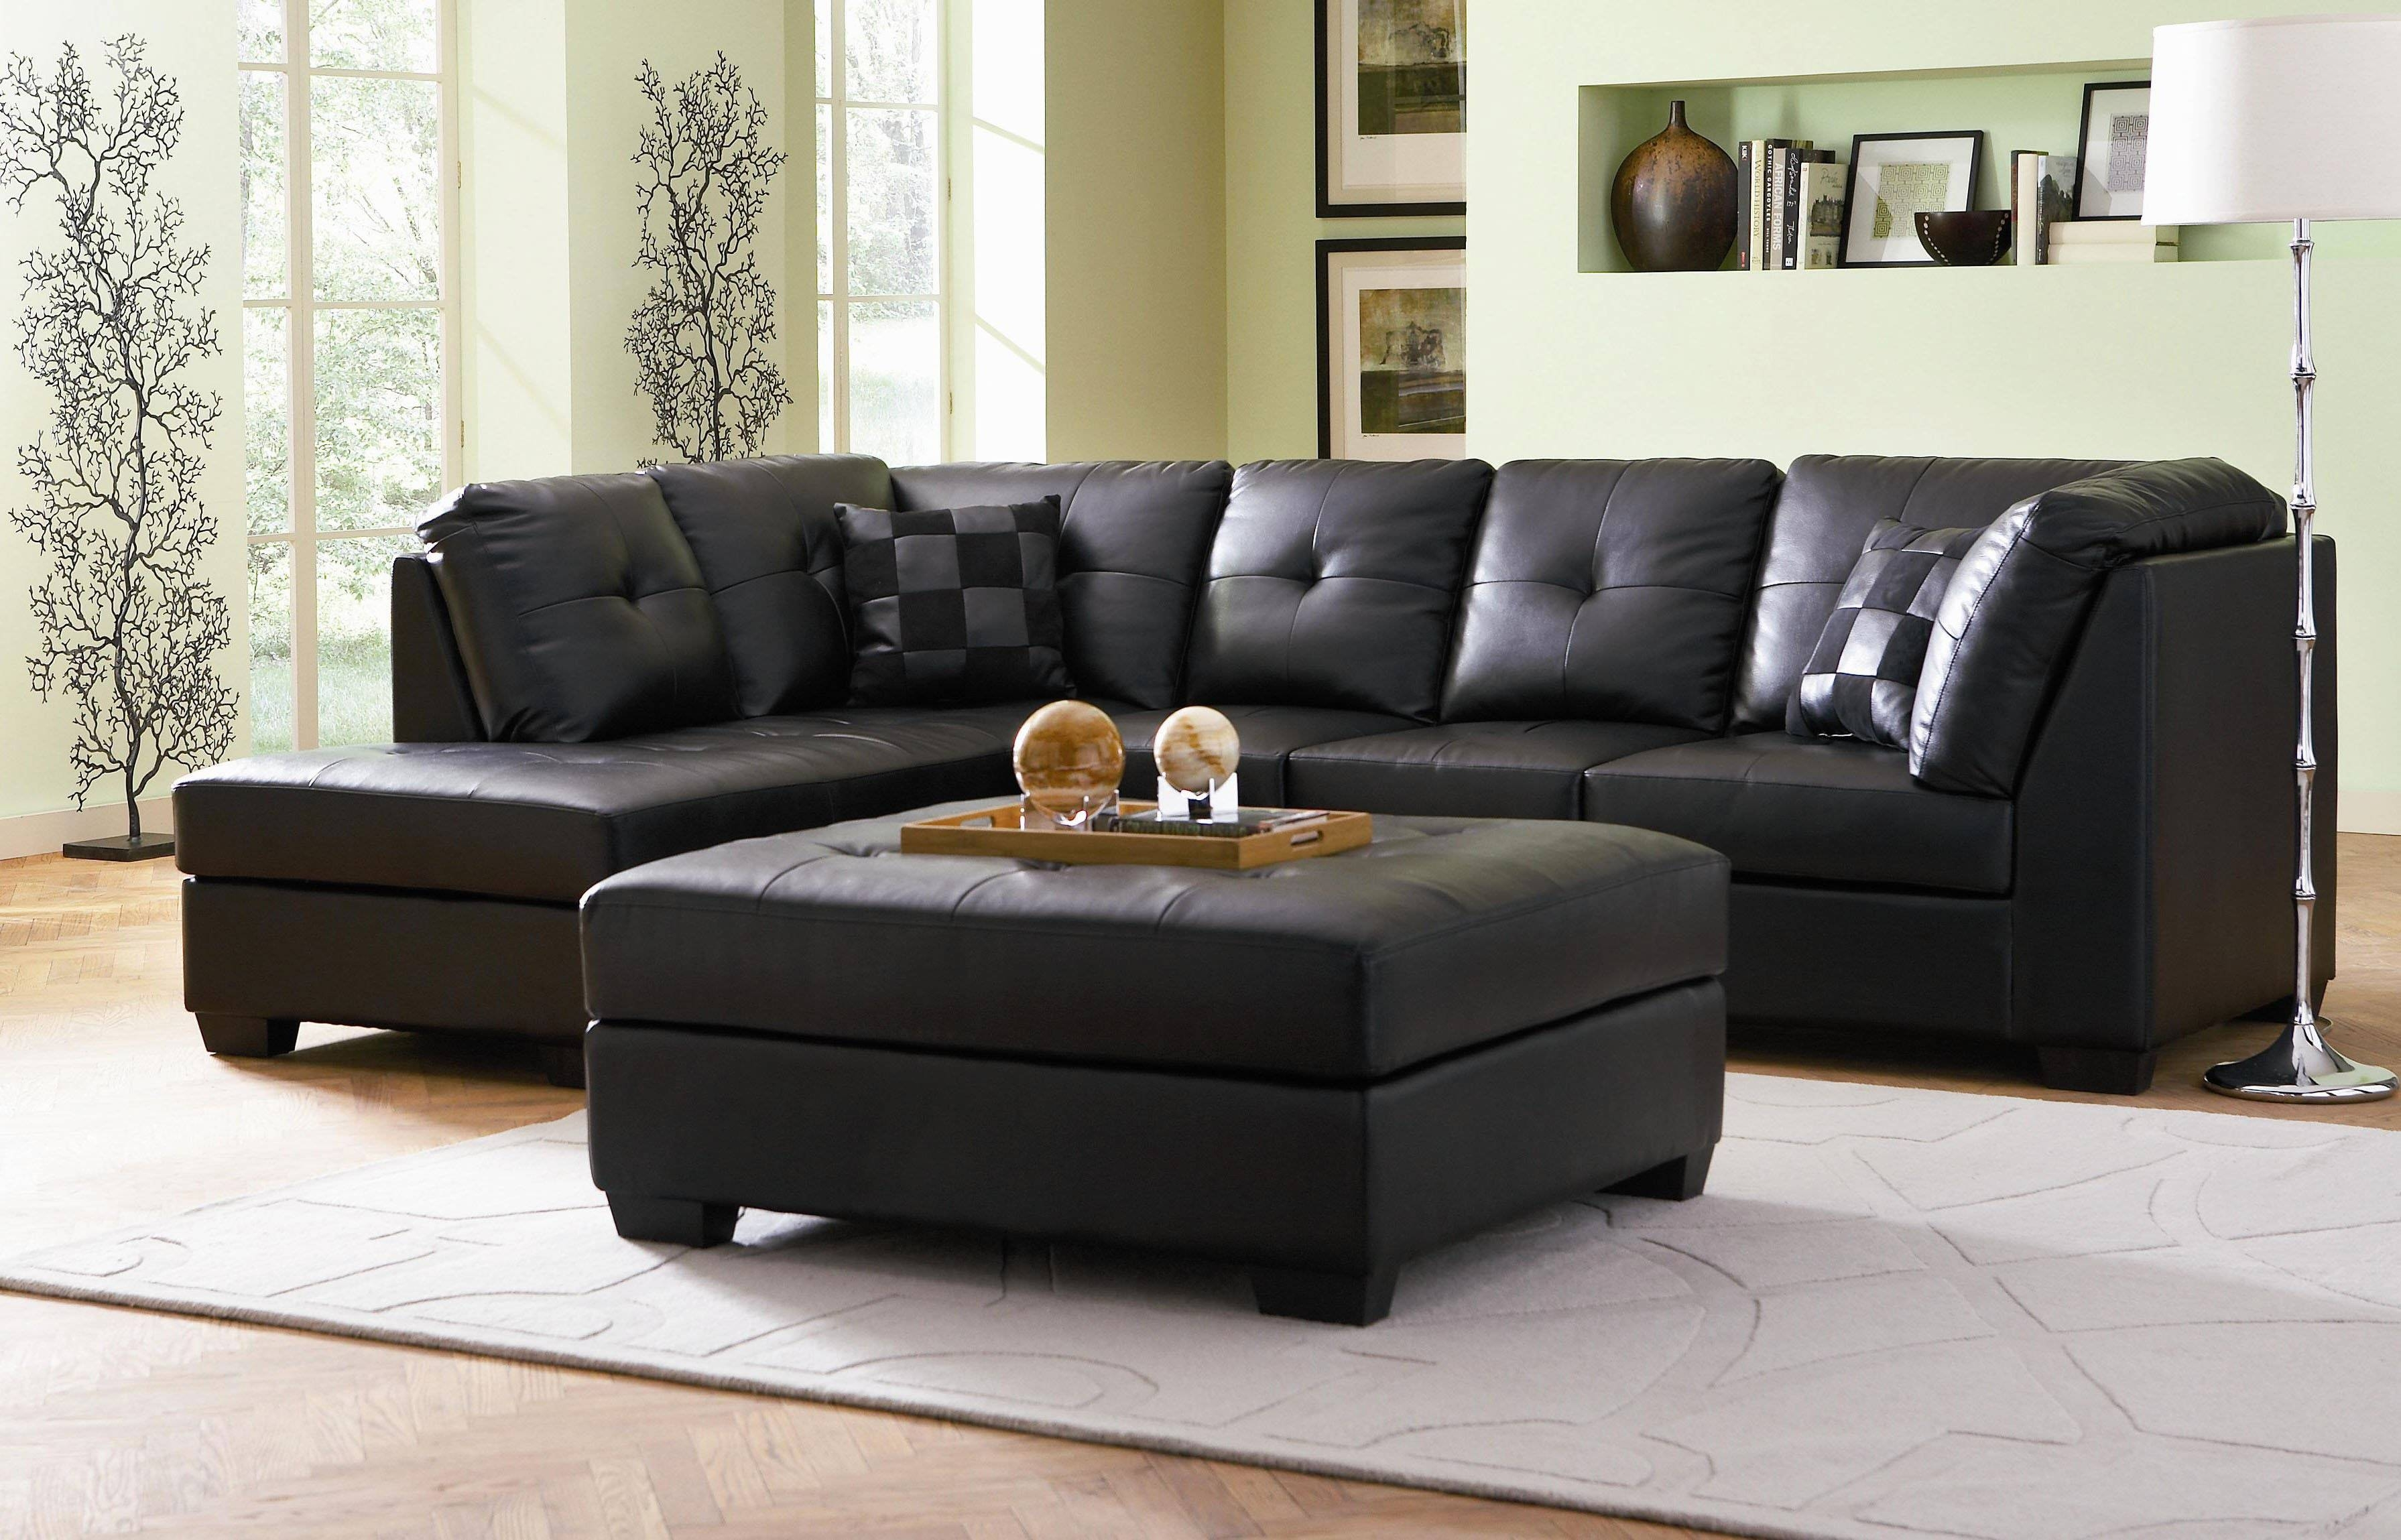 Furniture & Rug: Cheap Sectional Couches For Home Furniture Idea pertaining to Black Leather Sectional Sleeper Sofas (Image 11 of 30)